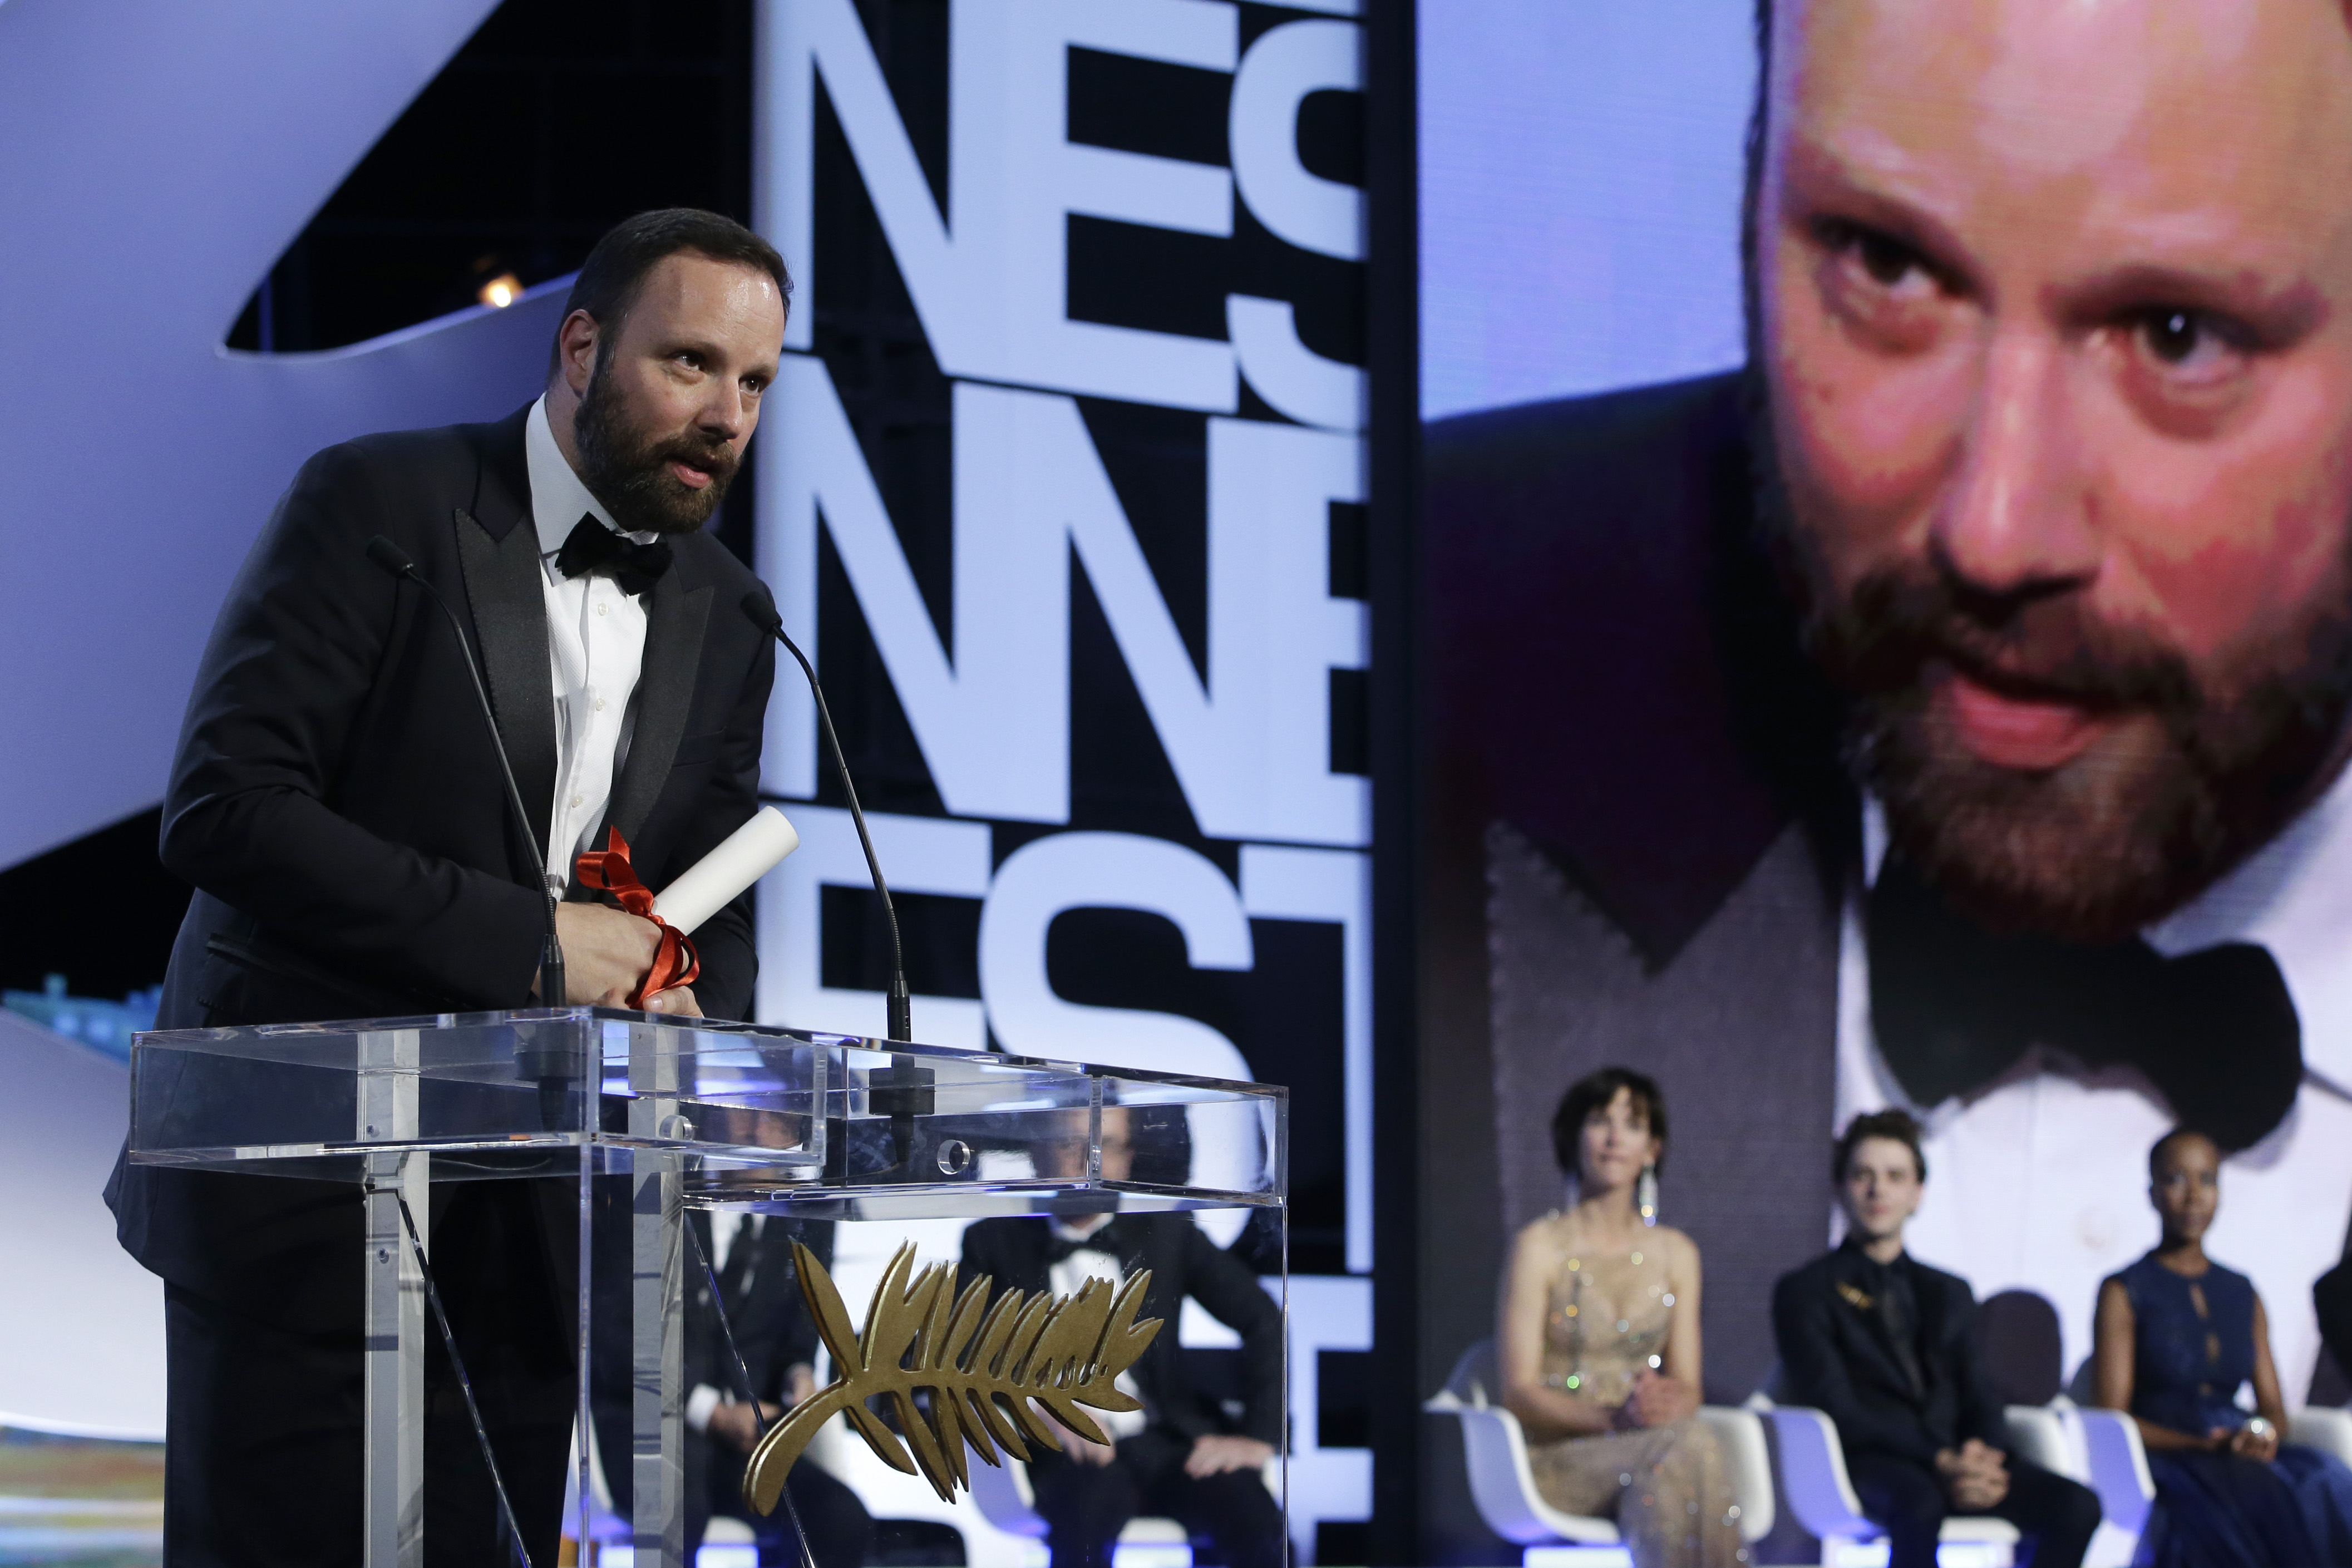 Yorgos Lanthimos Cannes The Lobster